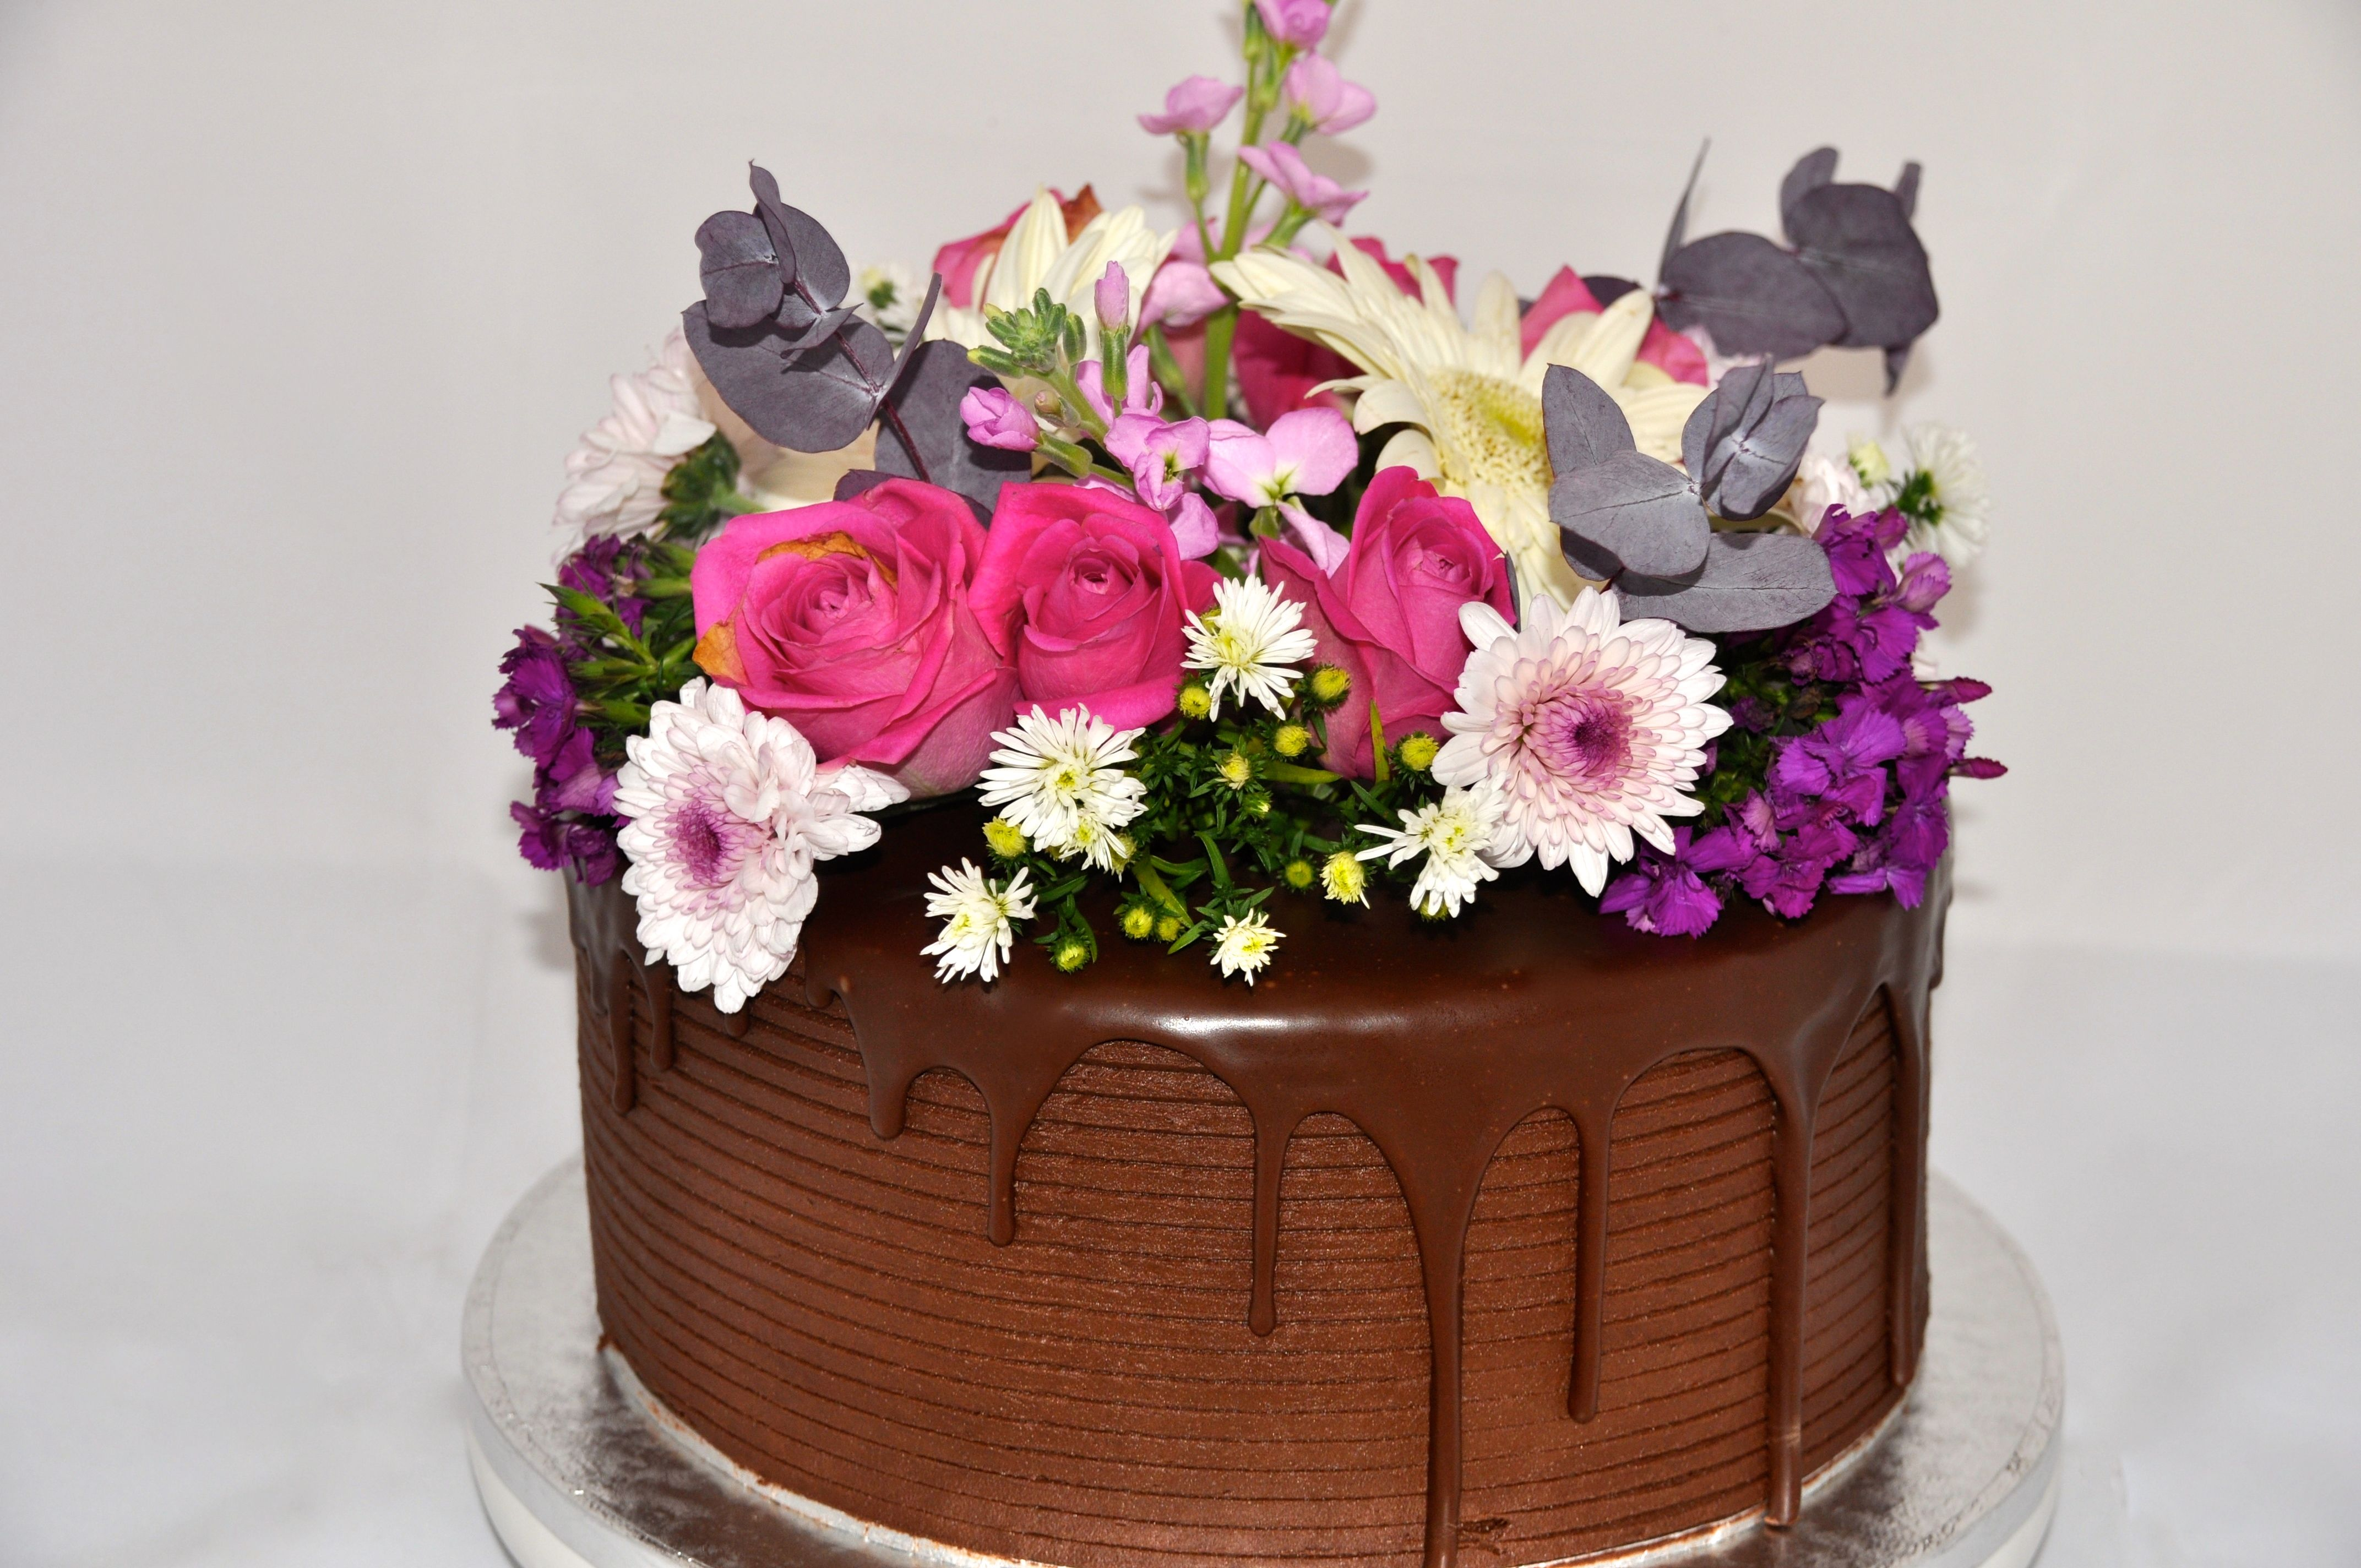 Mothers' Day Cake. Chocolate cake with fresh flowers ...  Mothers' Da...